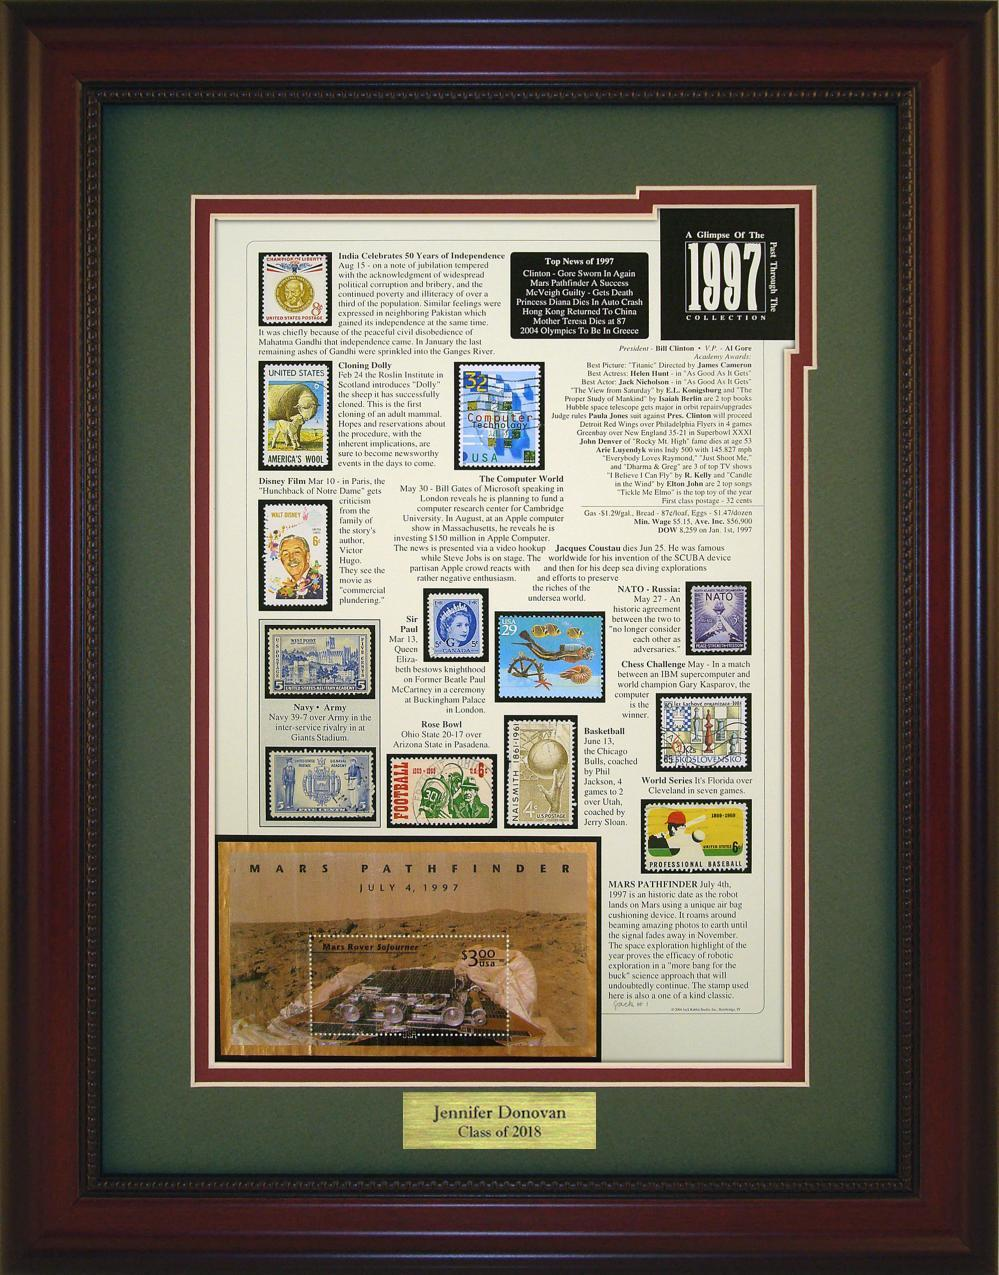 Year 1997 - Personalized Unique Framed Gift